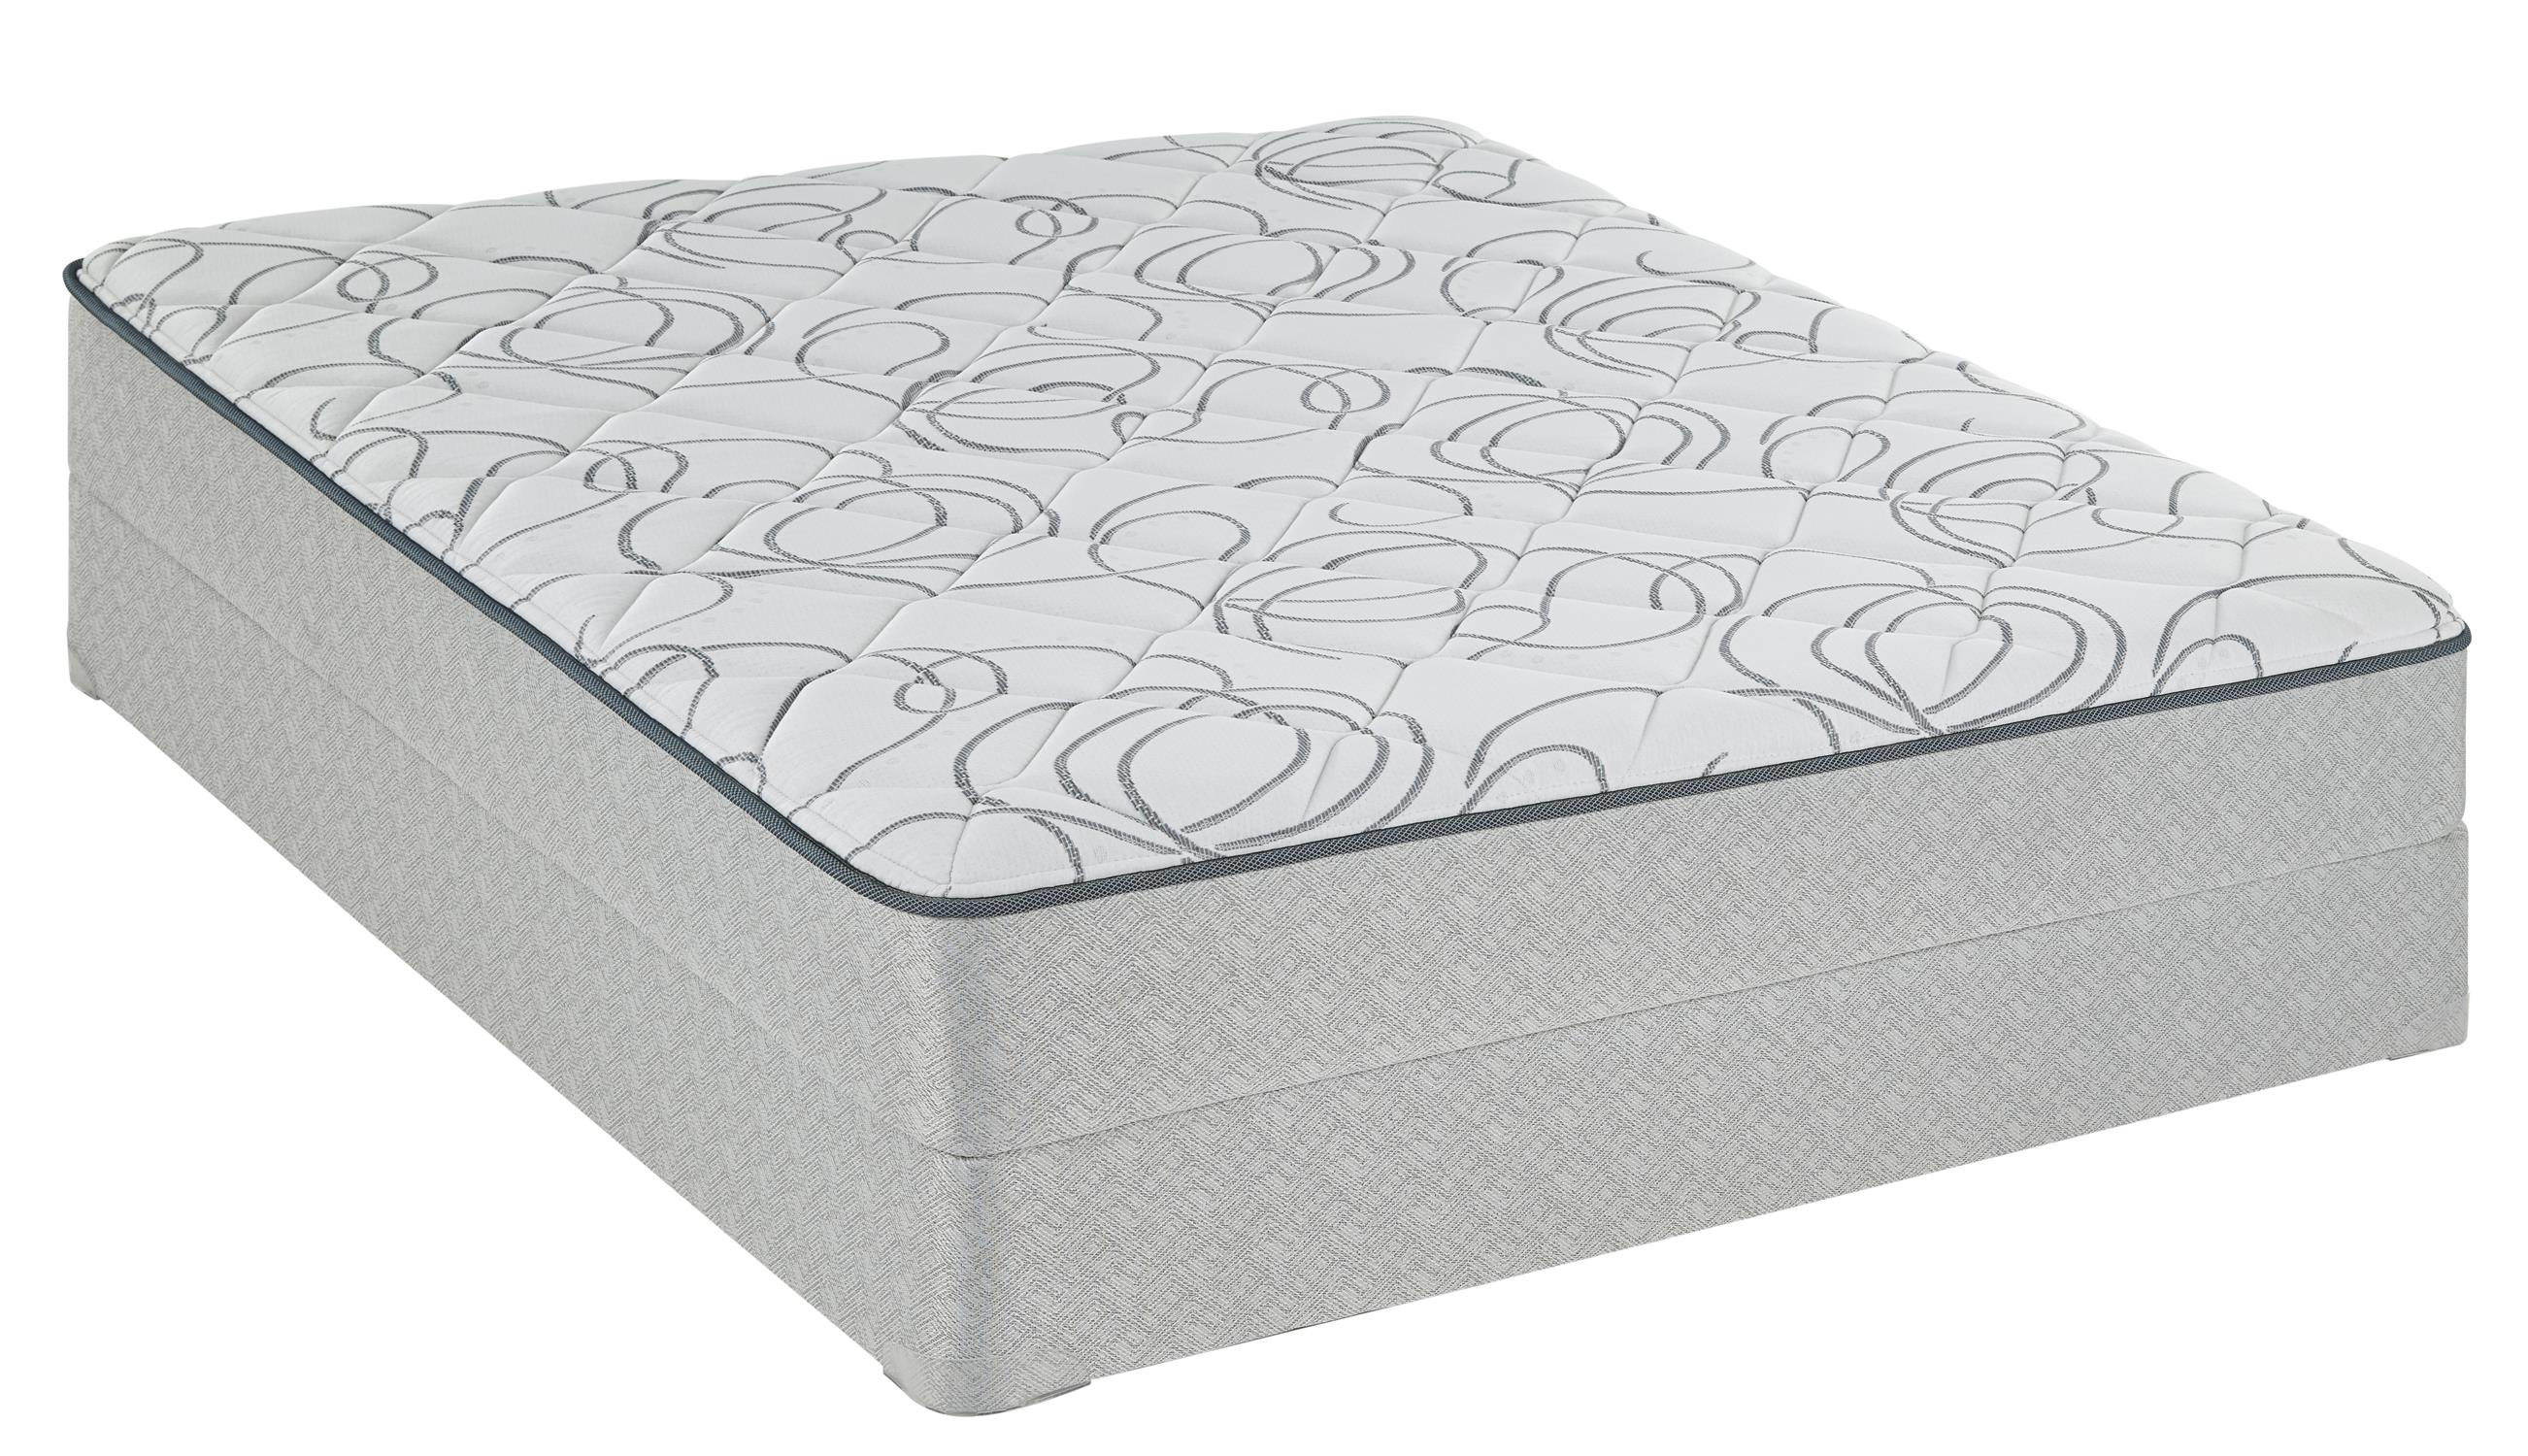 Sealy Sealy Brand Charwood King Plush Mattress Set - Item Number: PlushTT-K+2xFoundationK